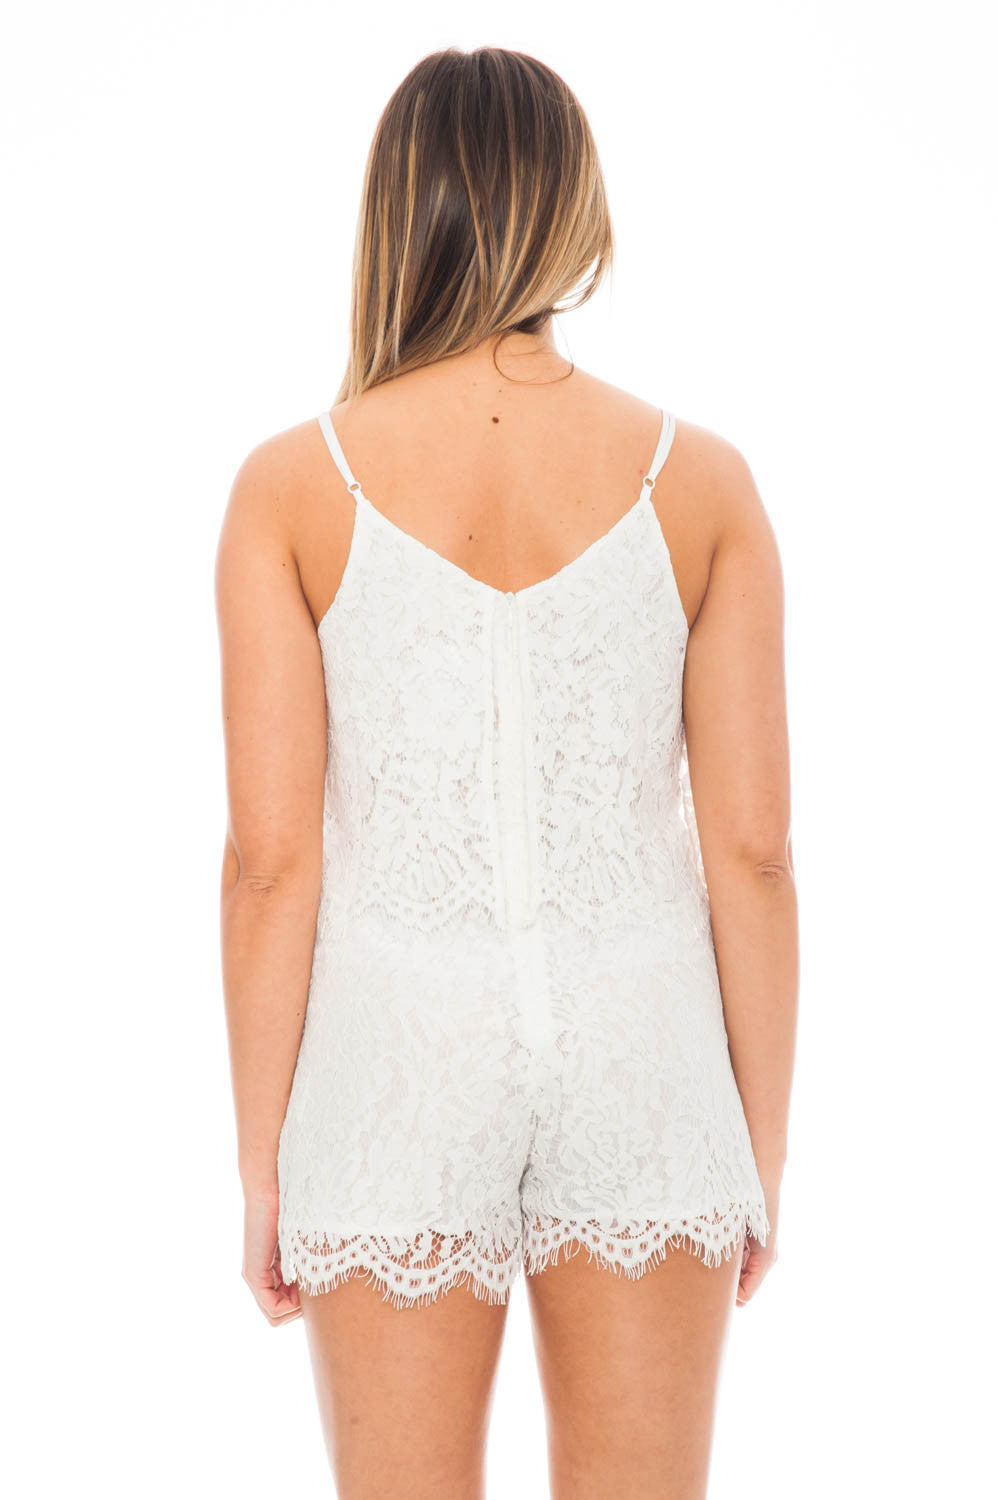 Romper - Lace Overlay Romper with Adjustable Straps by Everly